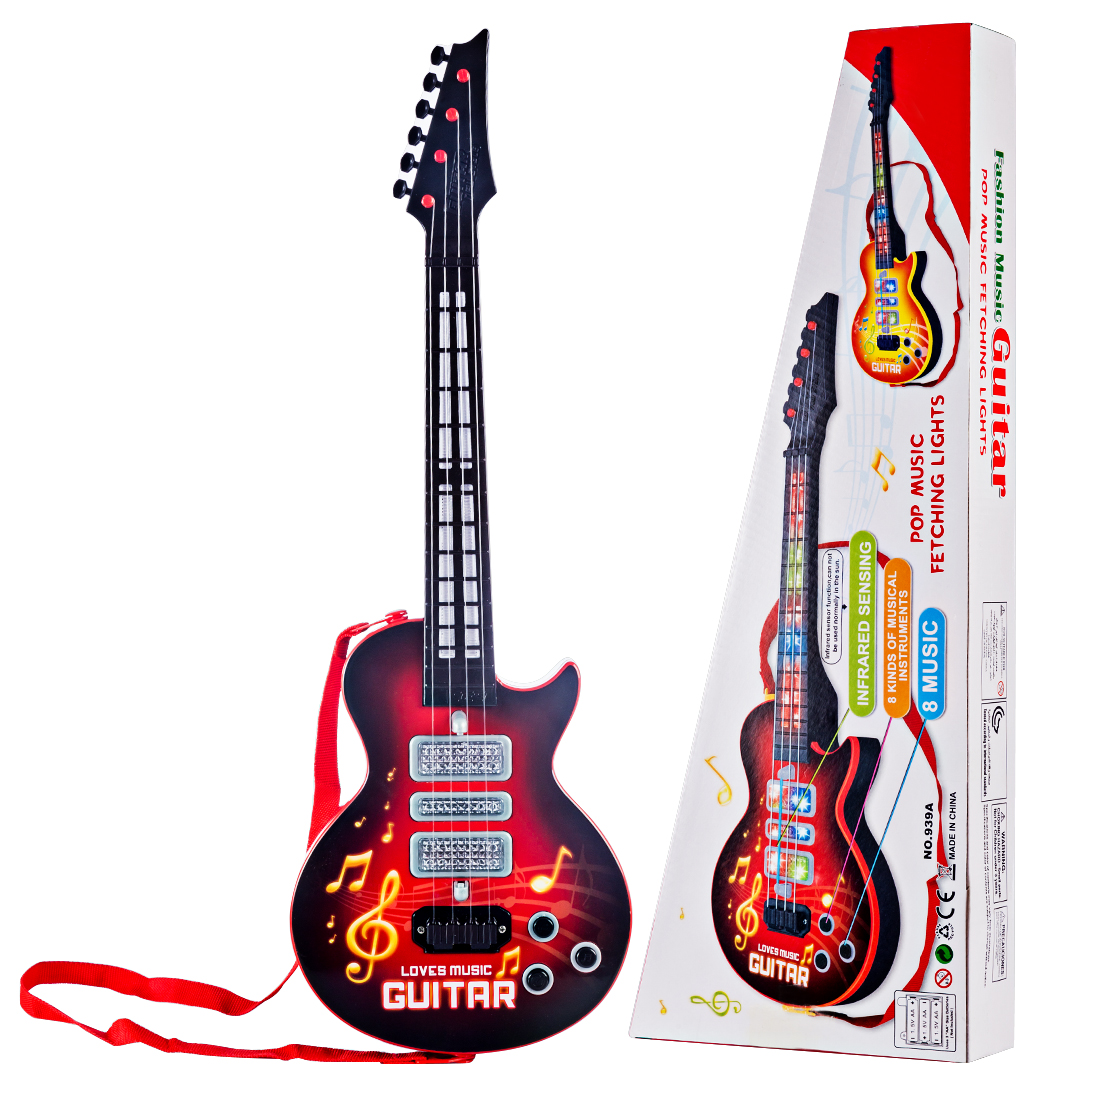 Hiqh Recommend 4 Strings Music Electric Guitar Toy Musical Instruments Educational For Children Juguetes  New Year Birthday Gift